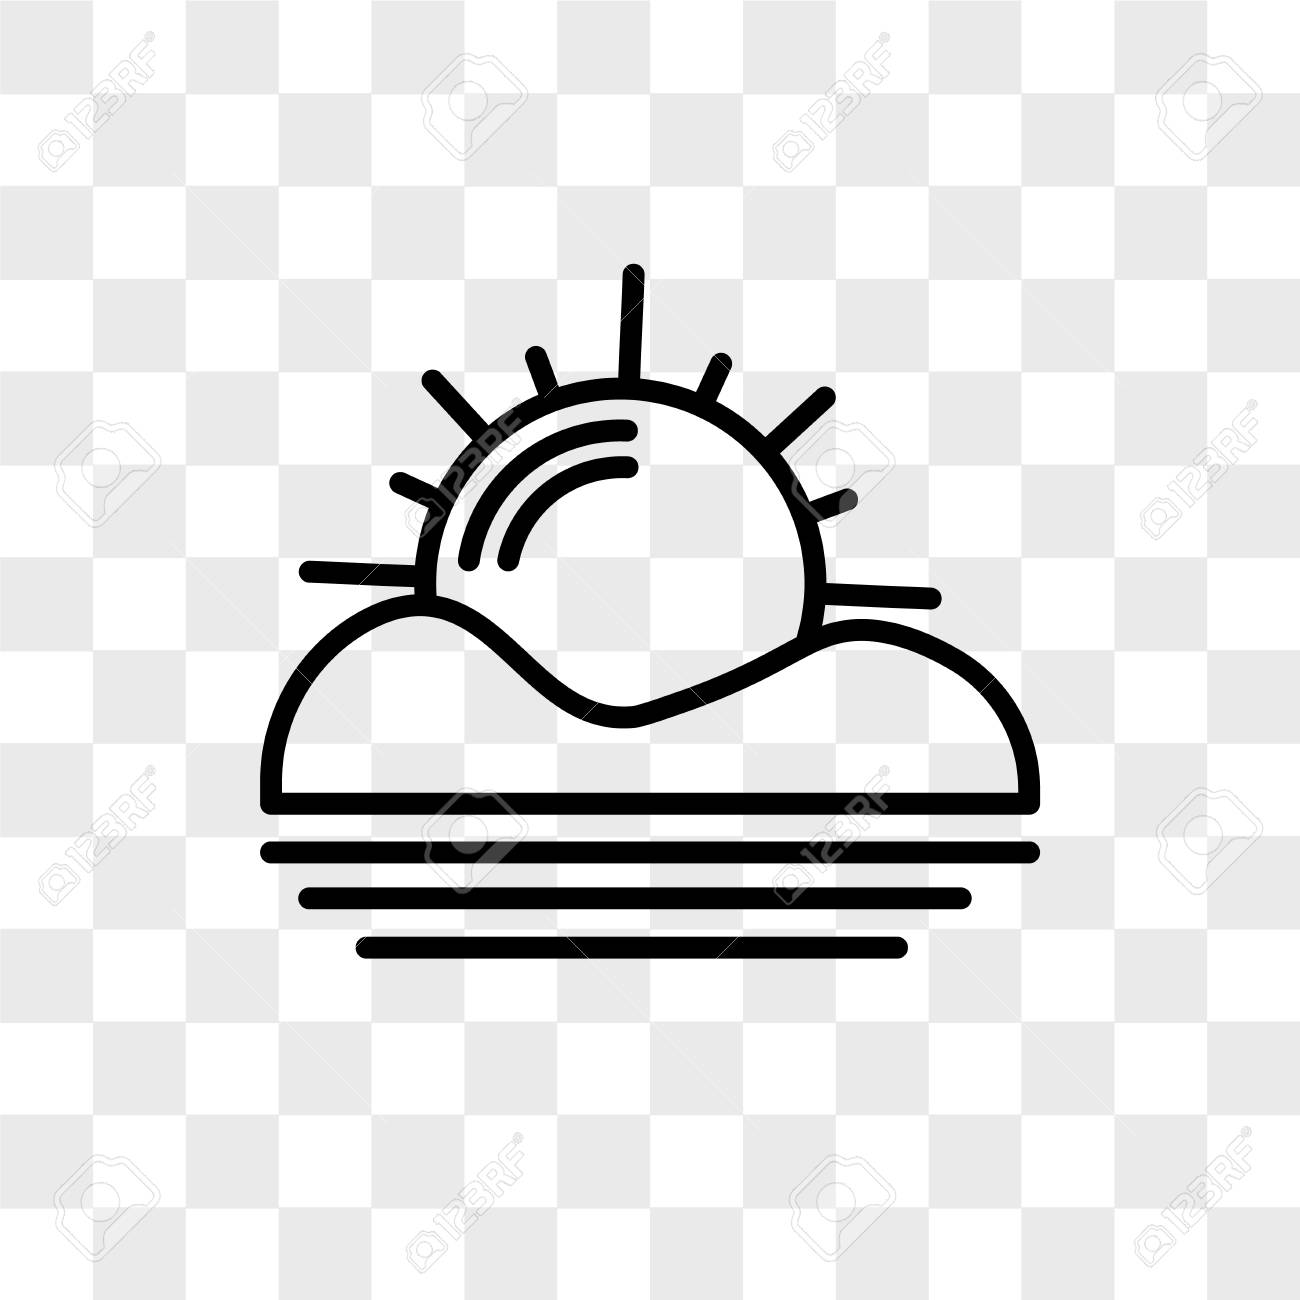 sunset vector icon isolated on transparent background sunset royalty free cliparts vectors and stock illustration image 109059544 sunset vector icon isolated on transparent background sunset